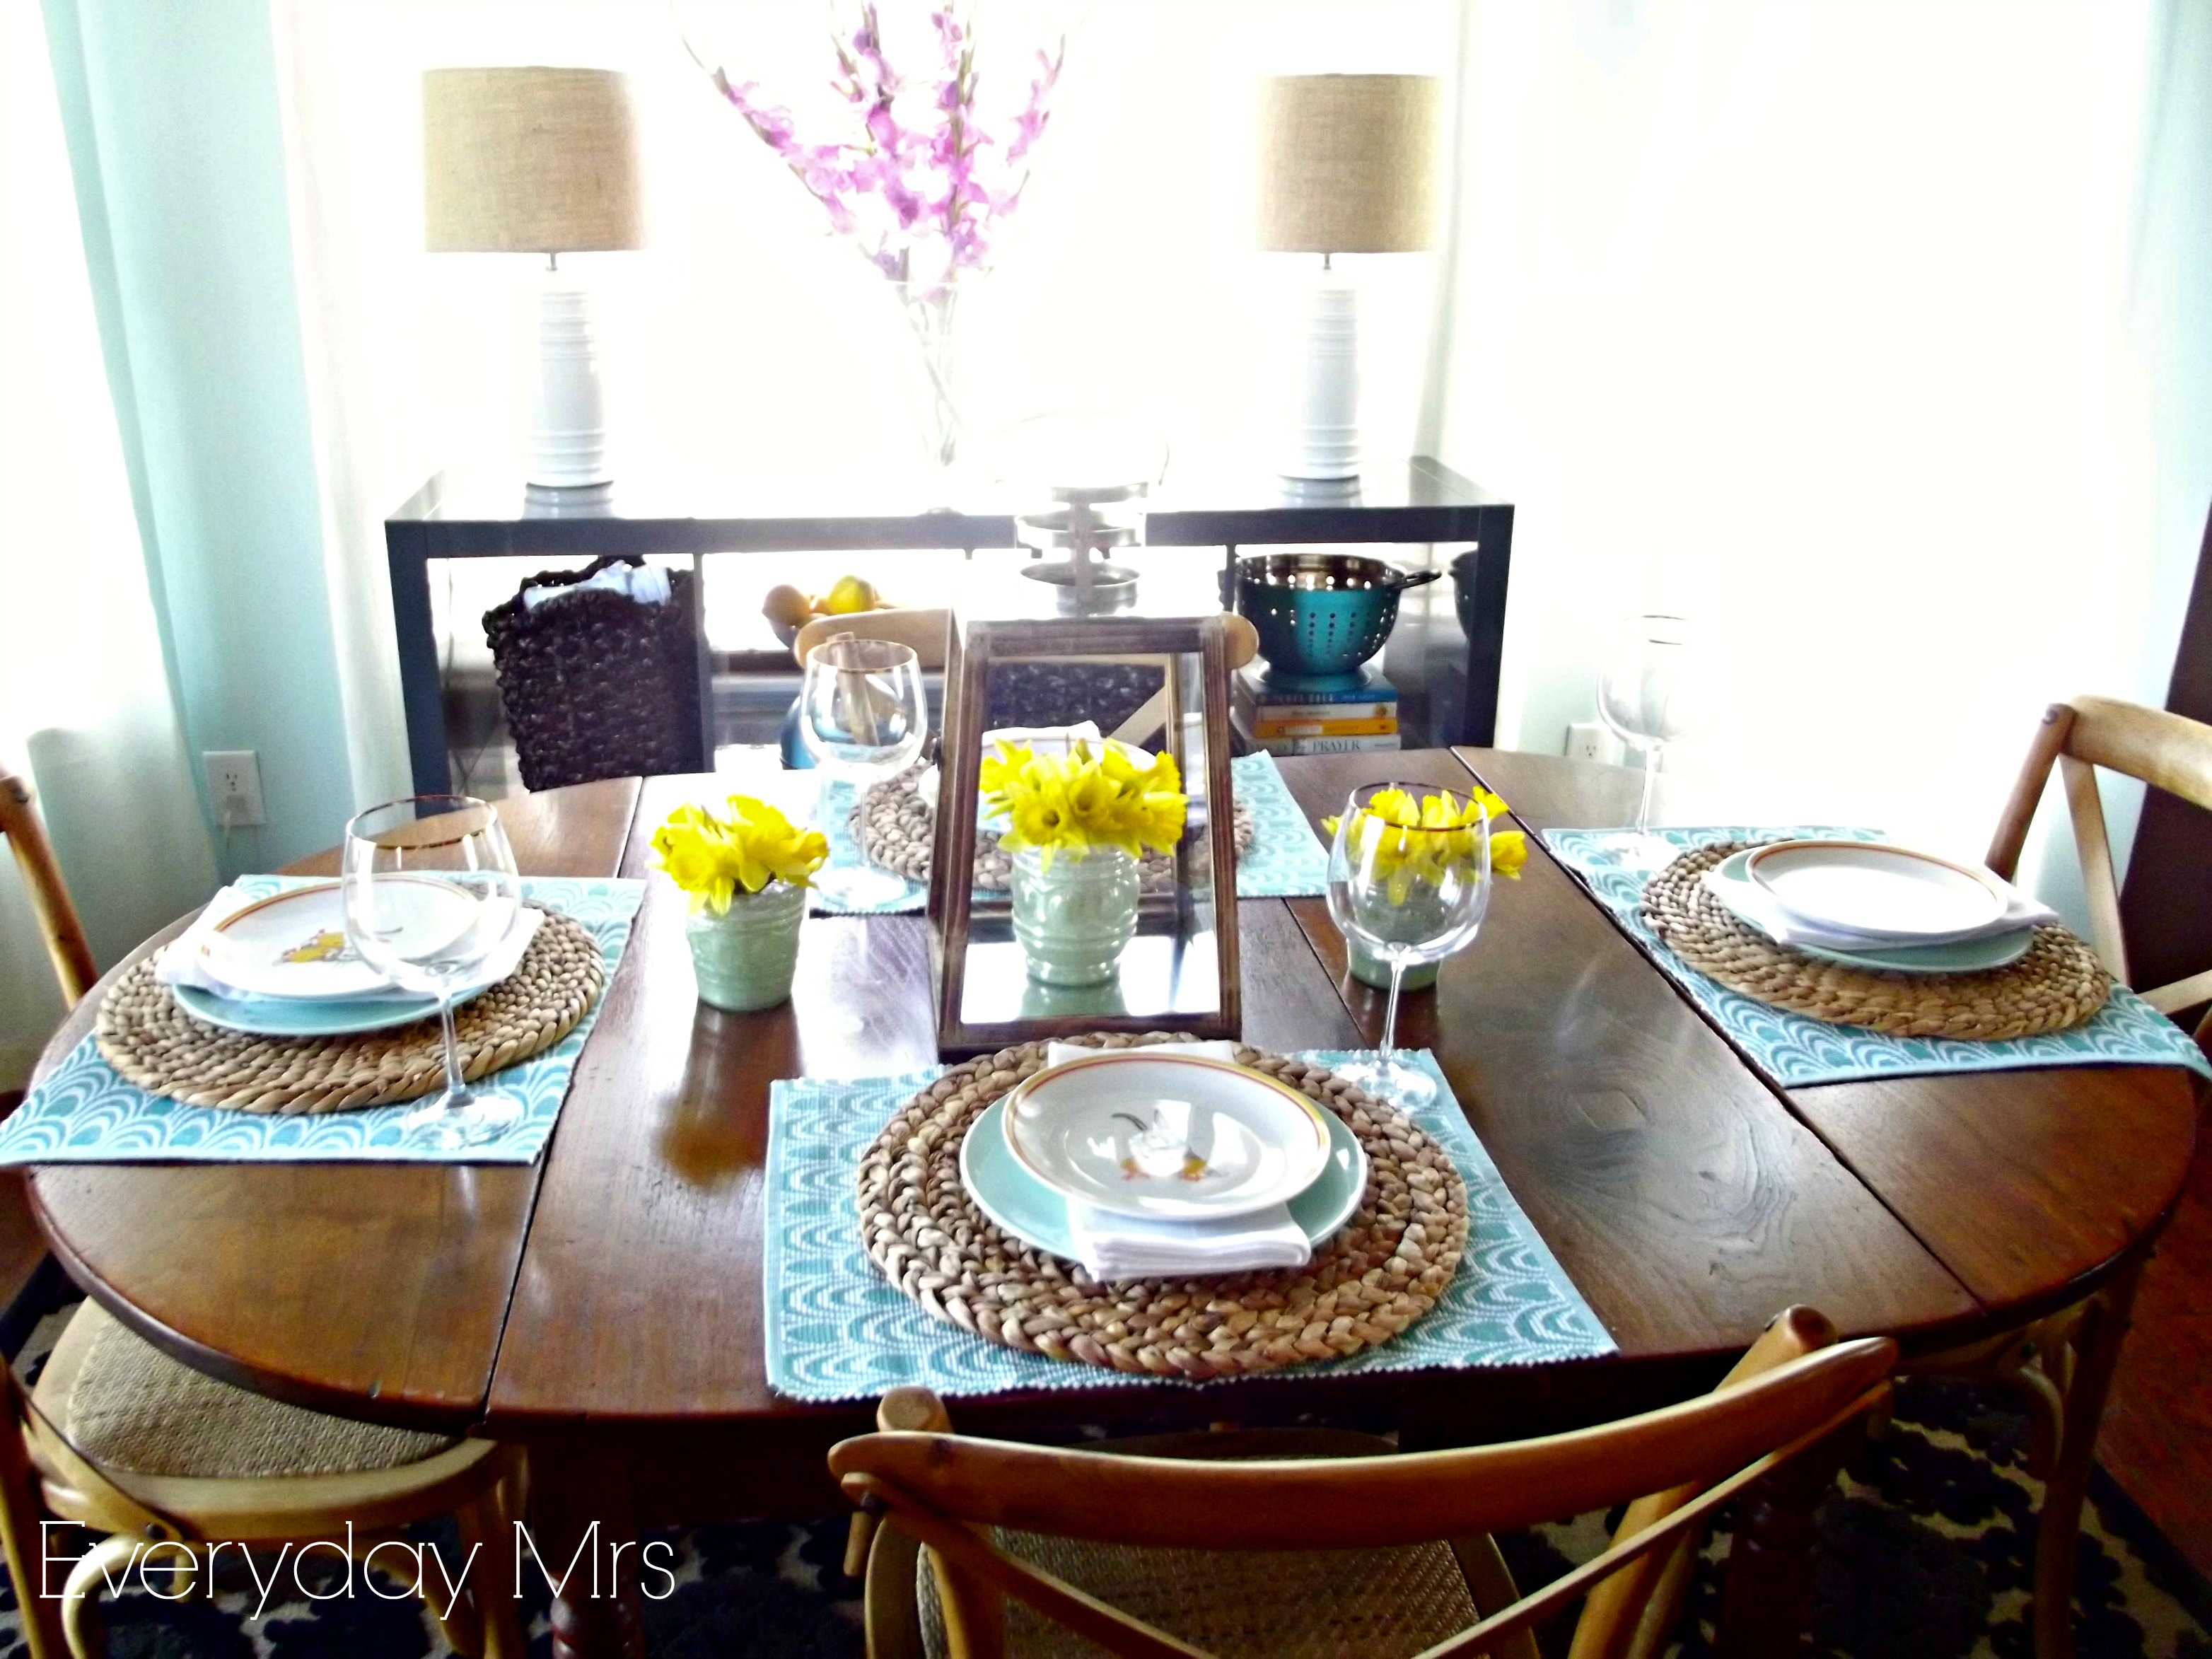 Everyday Easter Table Everyday Mrs & Cool Everyday Table Setting Photos - Best Image Engine - tagranks.com